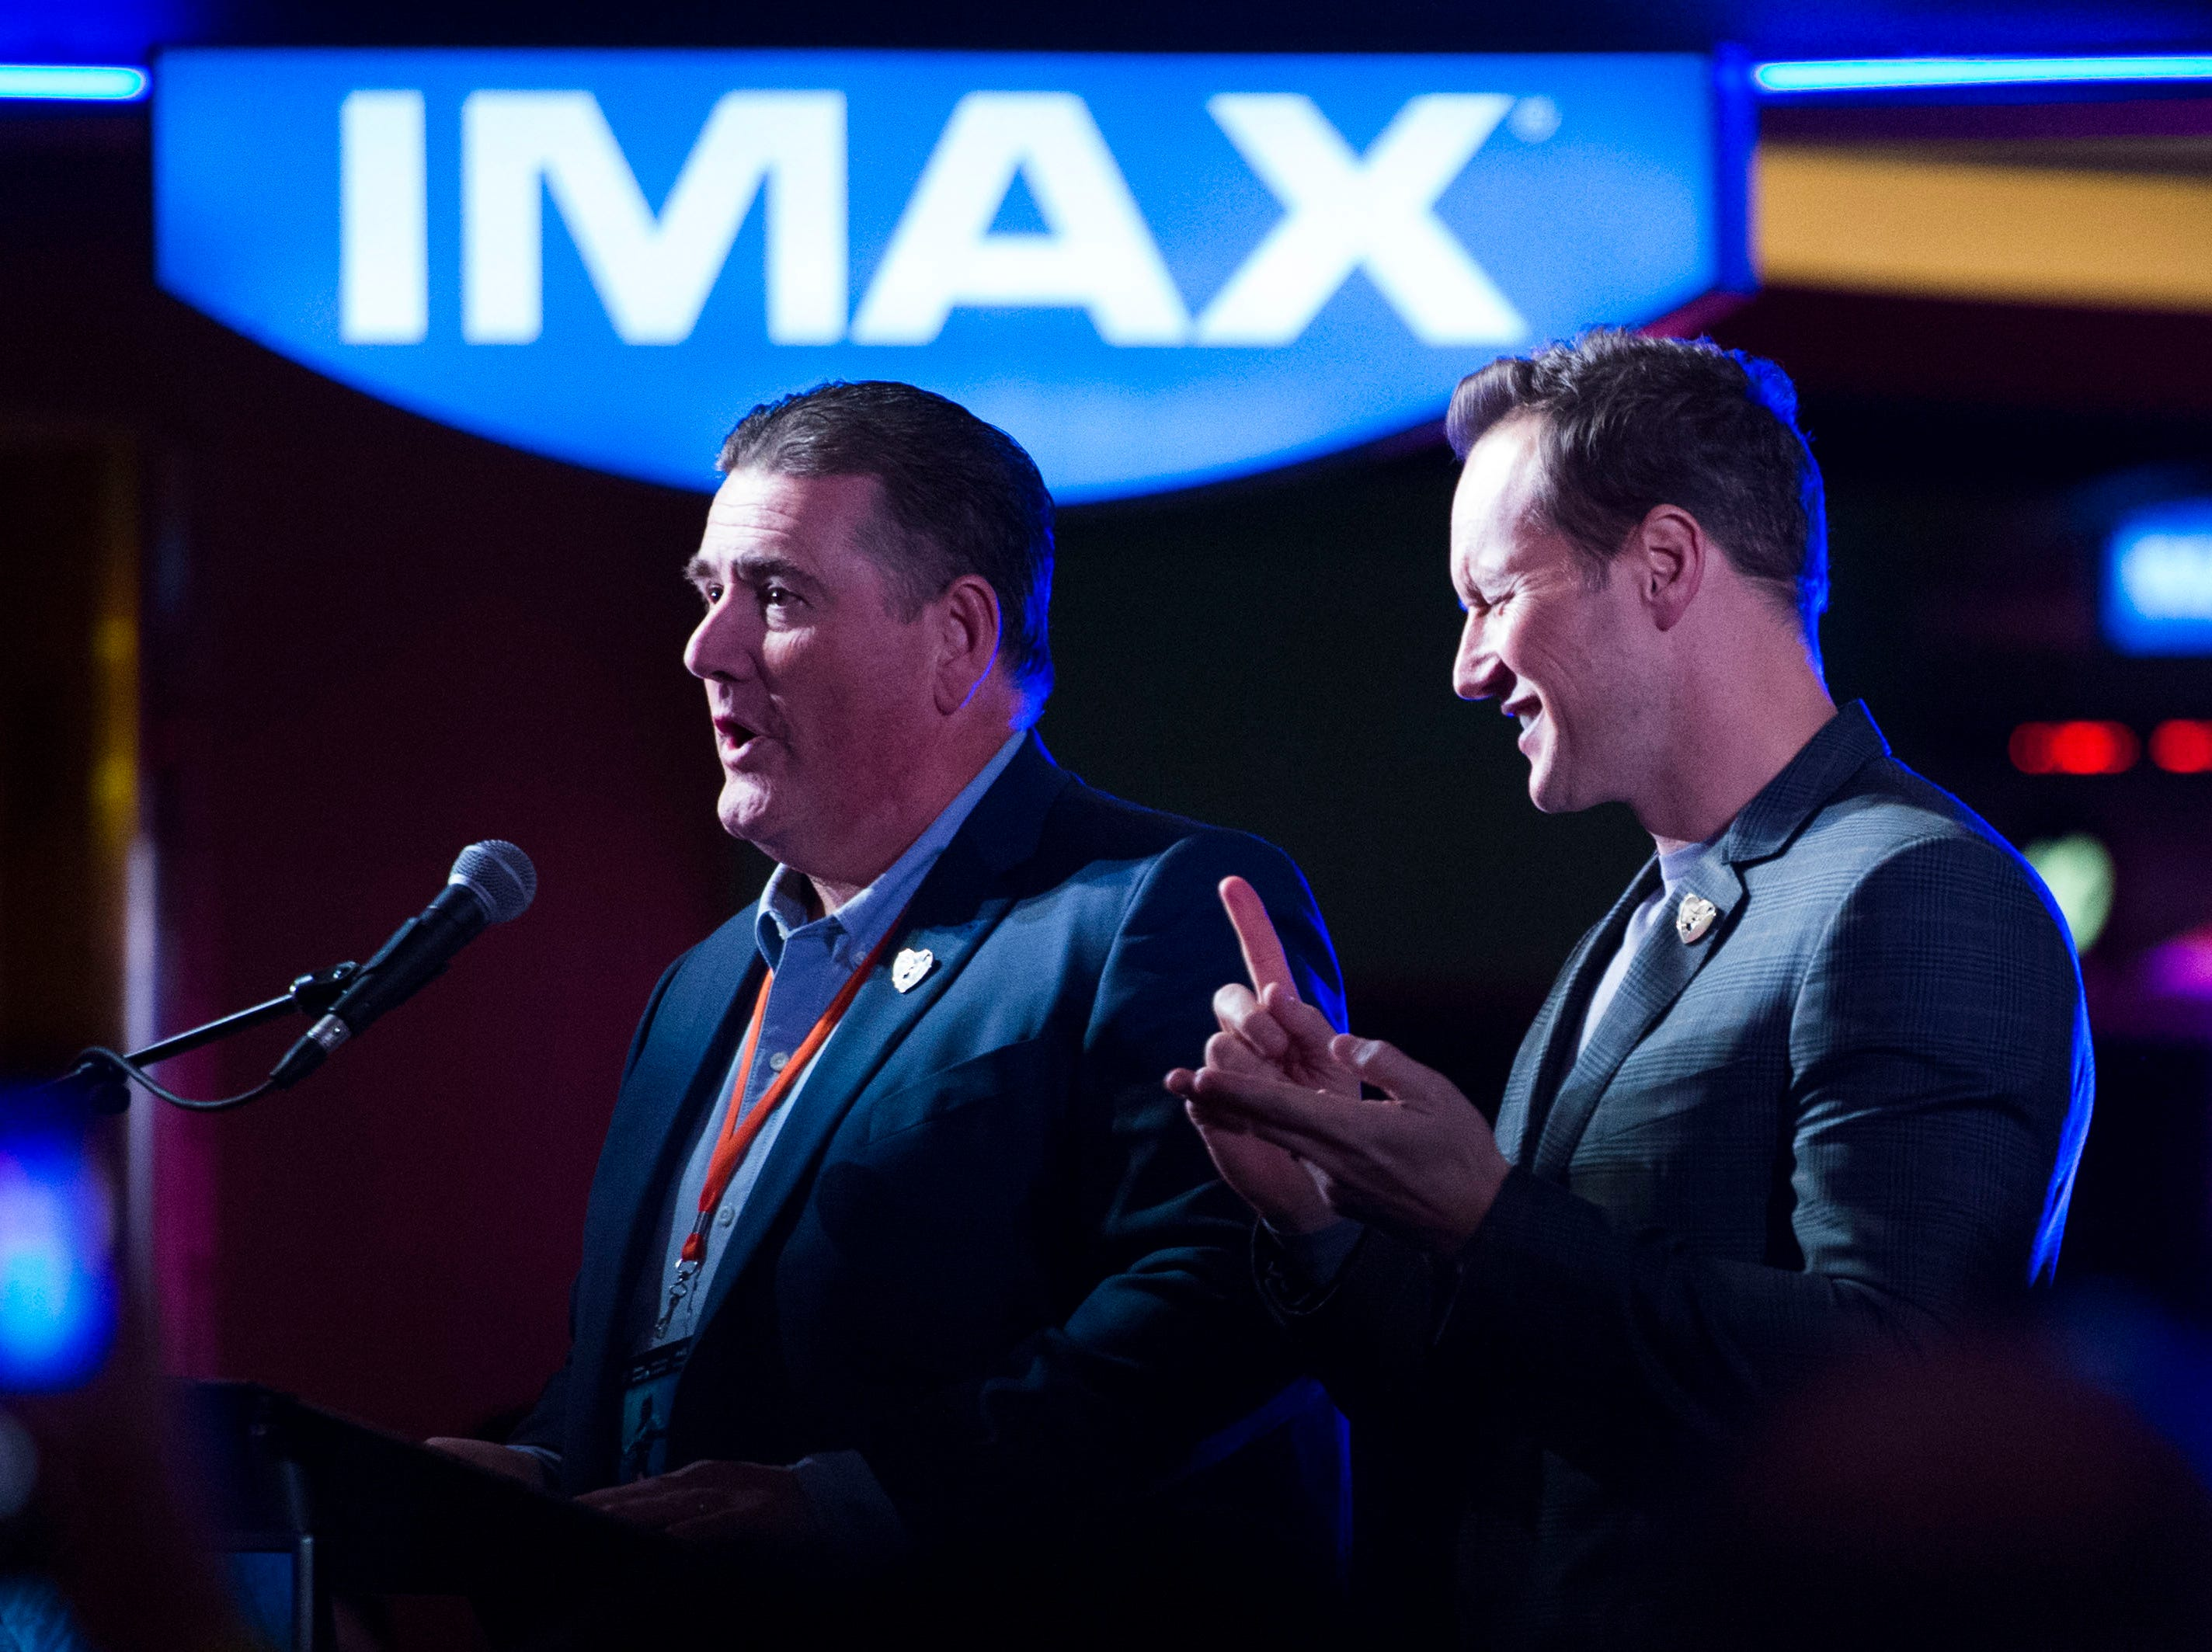 """At right """"Aquaman"""" star Patrick Wilson jokes around on stage at Regal's annual red carpet premiere for Variety at Regal Pinnacle Stadium 18, Thursday, Dec. 13, 2018."""